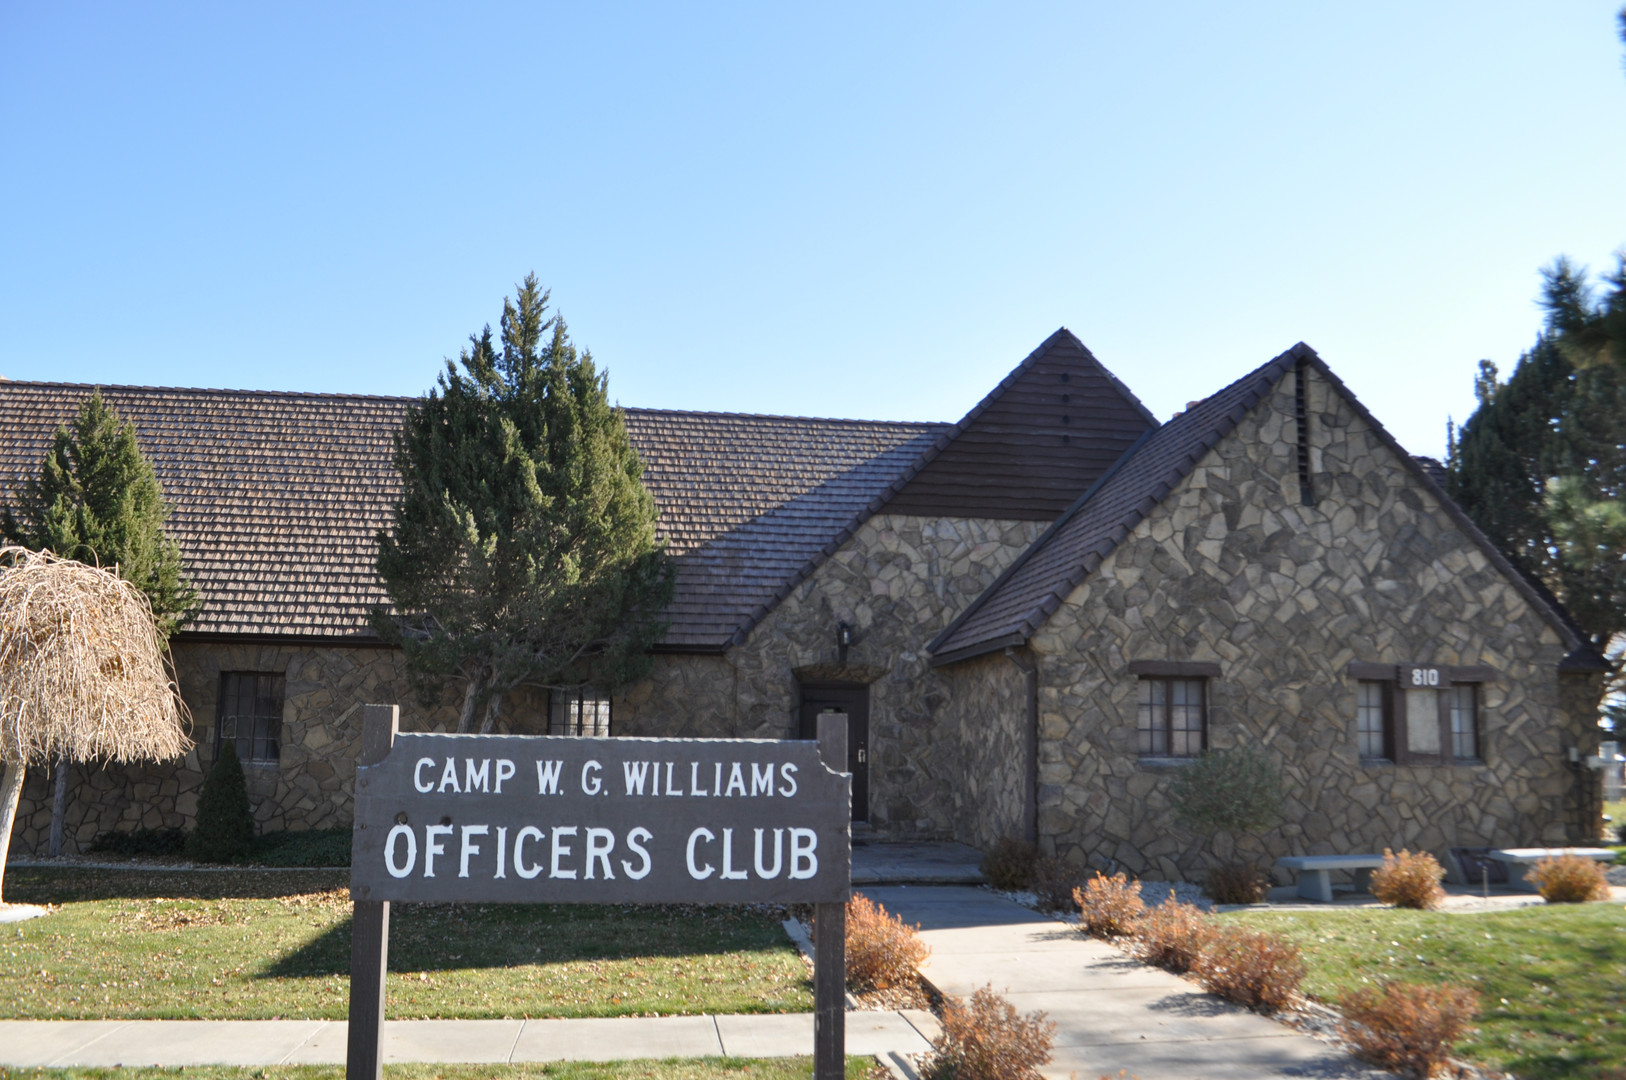 Officer's Club Front